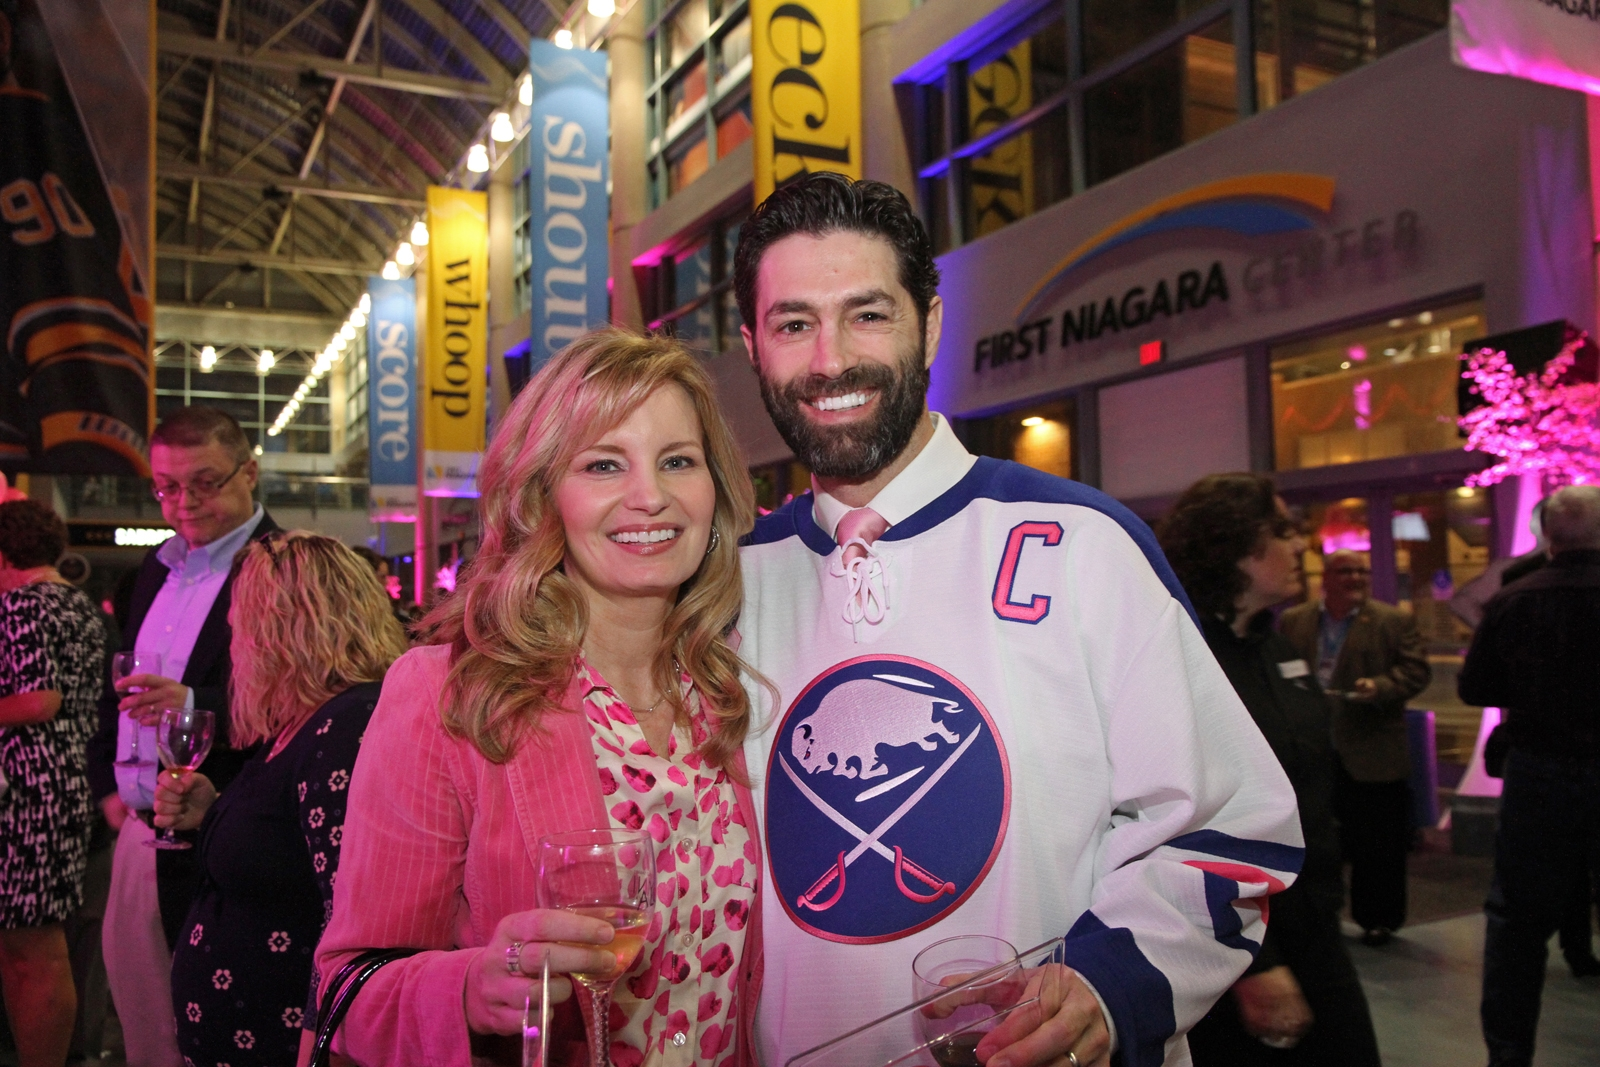 Former Sabres captain Michael Peca was among the more than two dozen alumni at last year's wine festival. (Erica Malinowski/Special to The News)